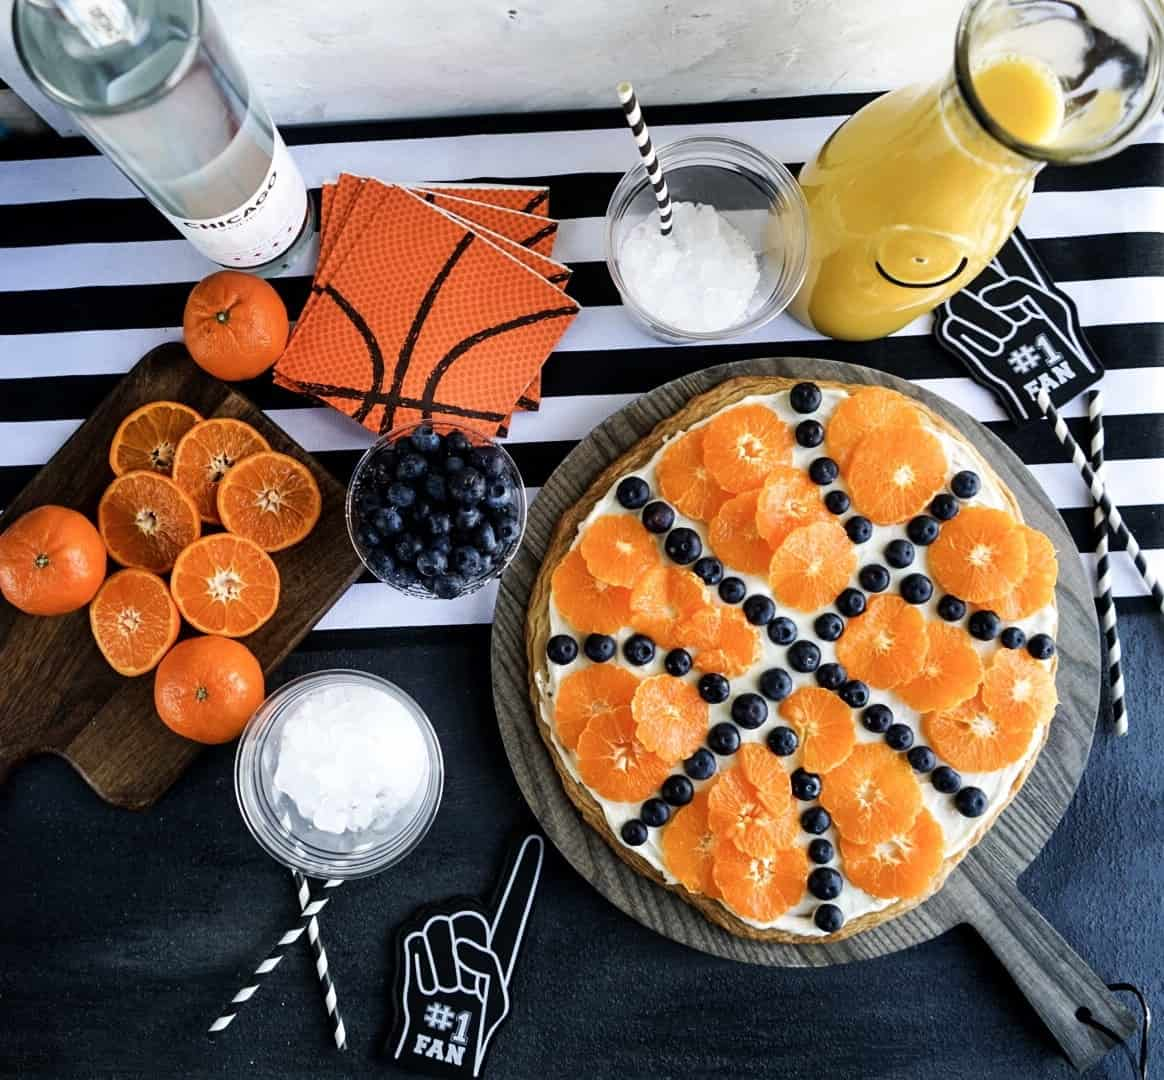 Dessert pizza recipes: Basketball pizza at Windy City Dinner Fairy